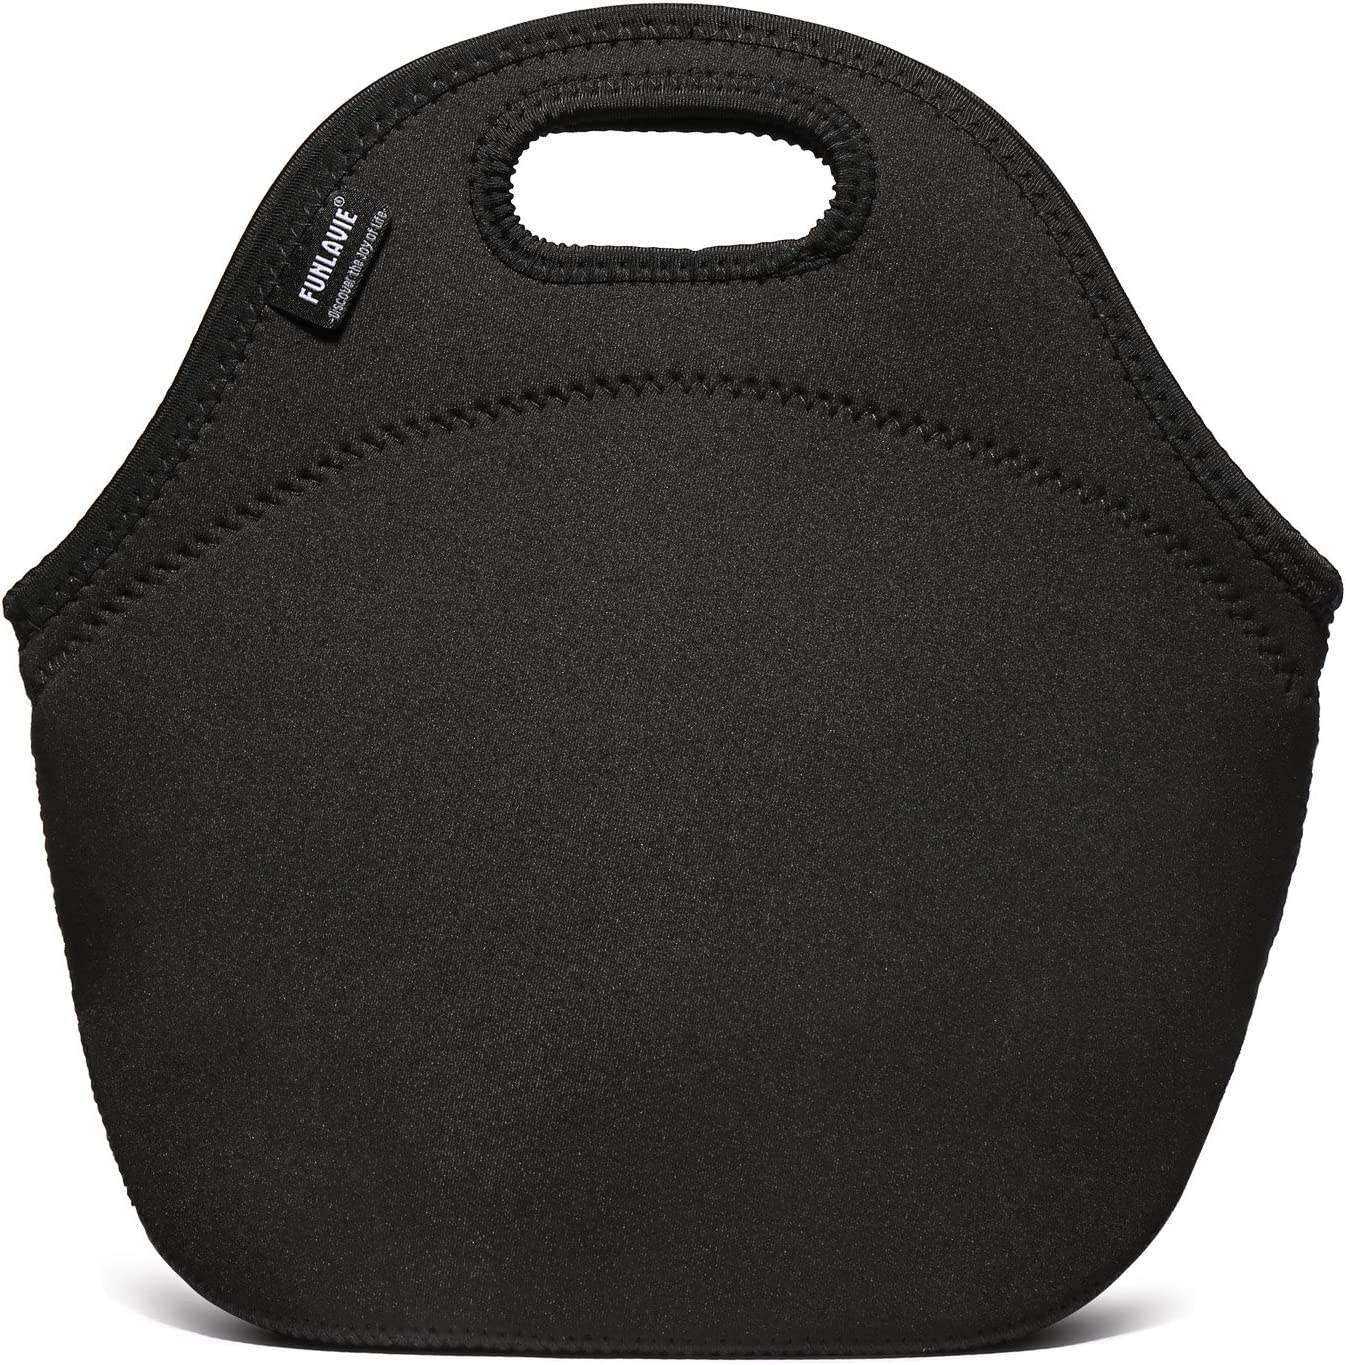 Black 4mm Neoprene Lunch Bags for Men Small Insulated Tote Bag With Zipper for Adults Women - FUNLAVIE